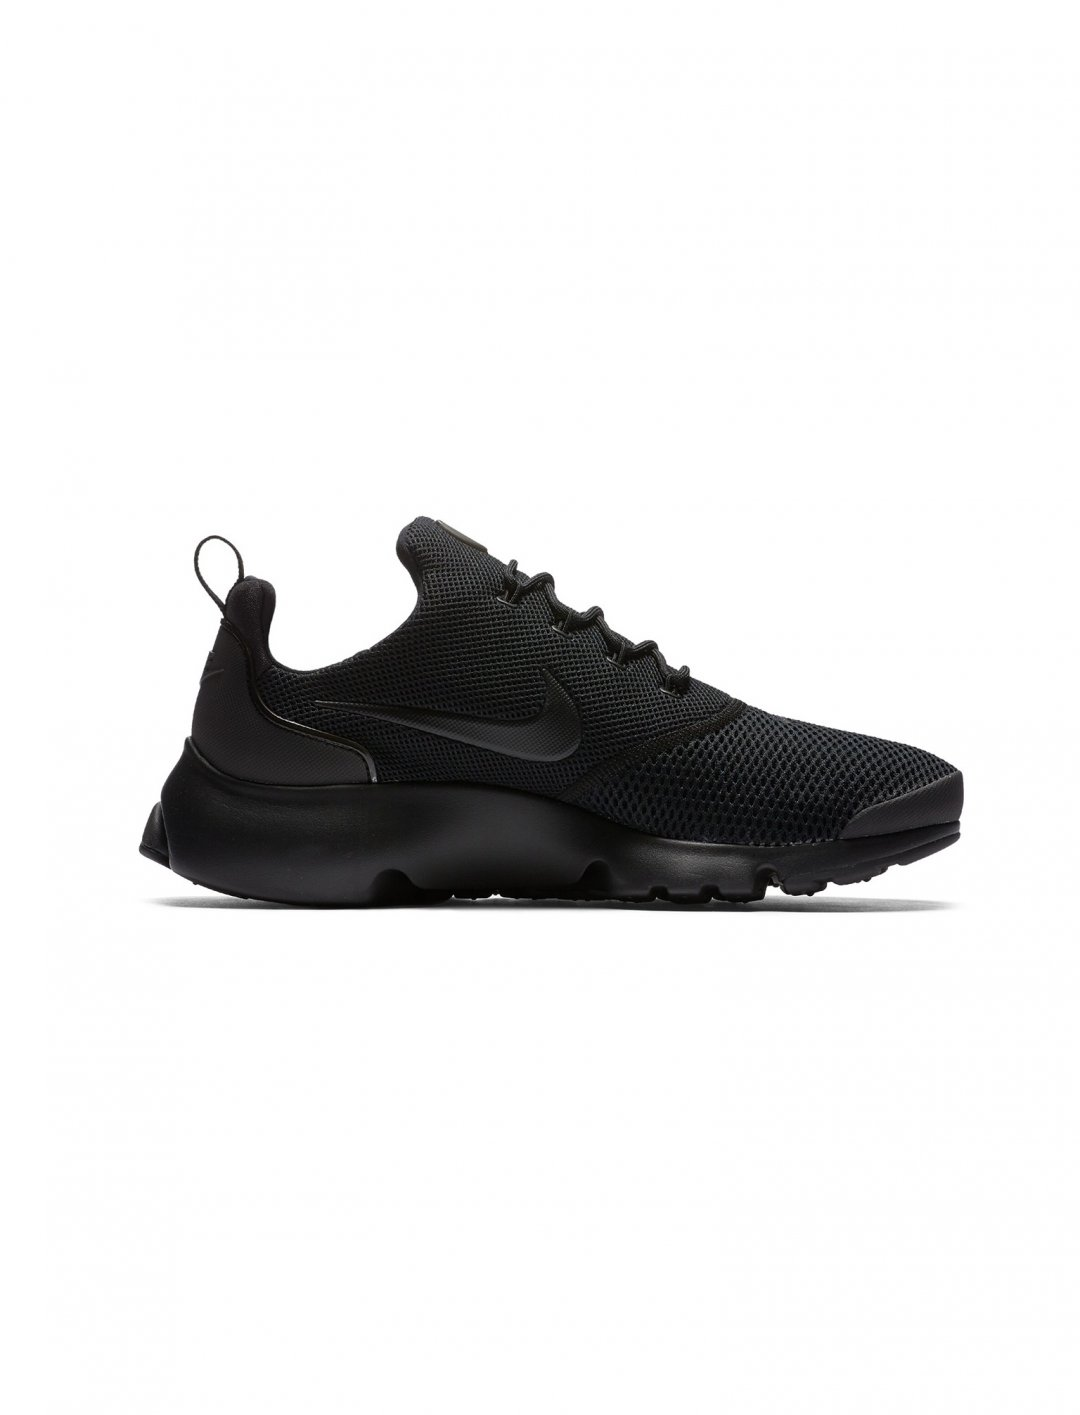 "Nike Presto Fly Trainers {""id"":12,""product_section_id"":1,""name"":""Shoes"",""order"":12} Nike"